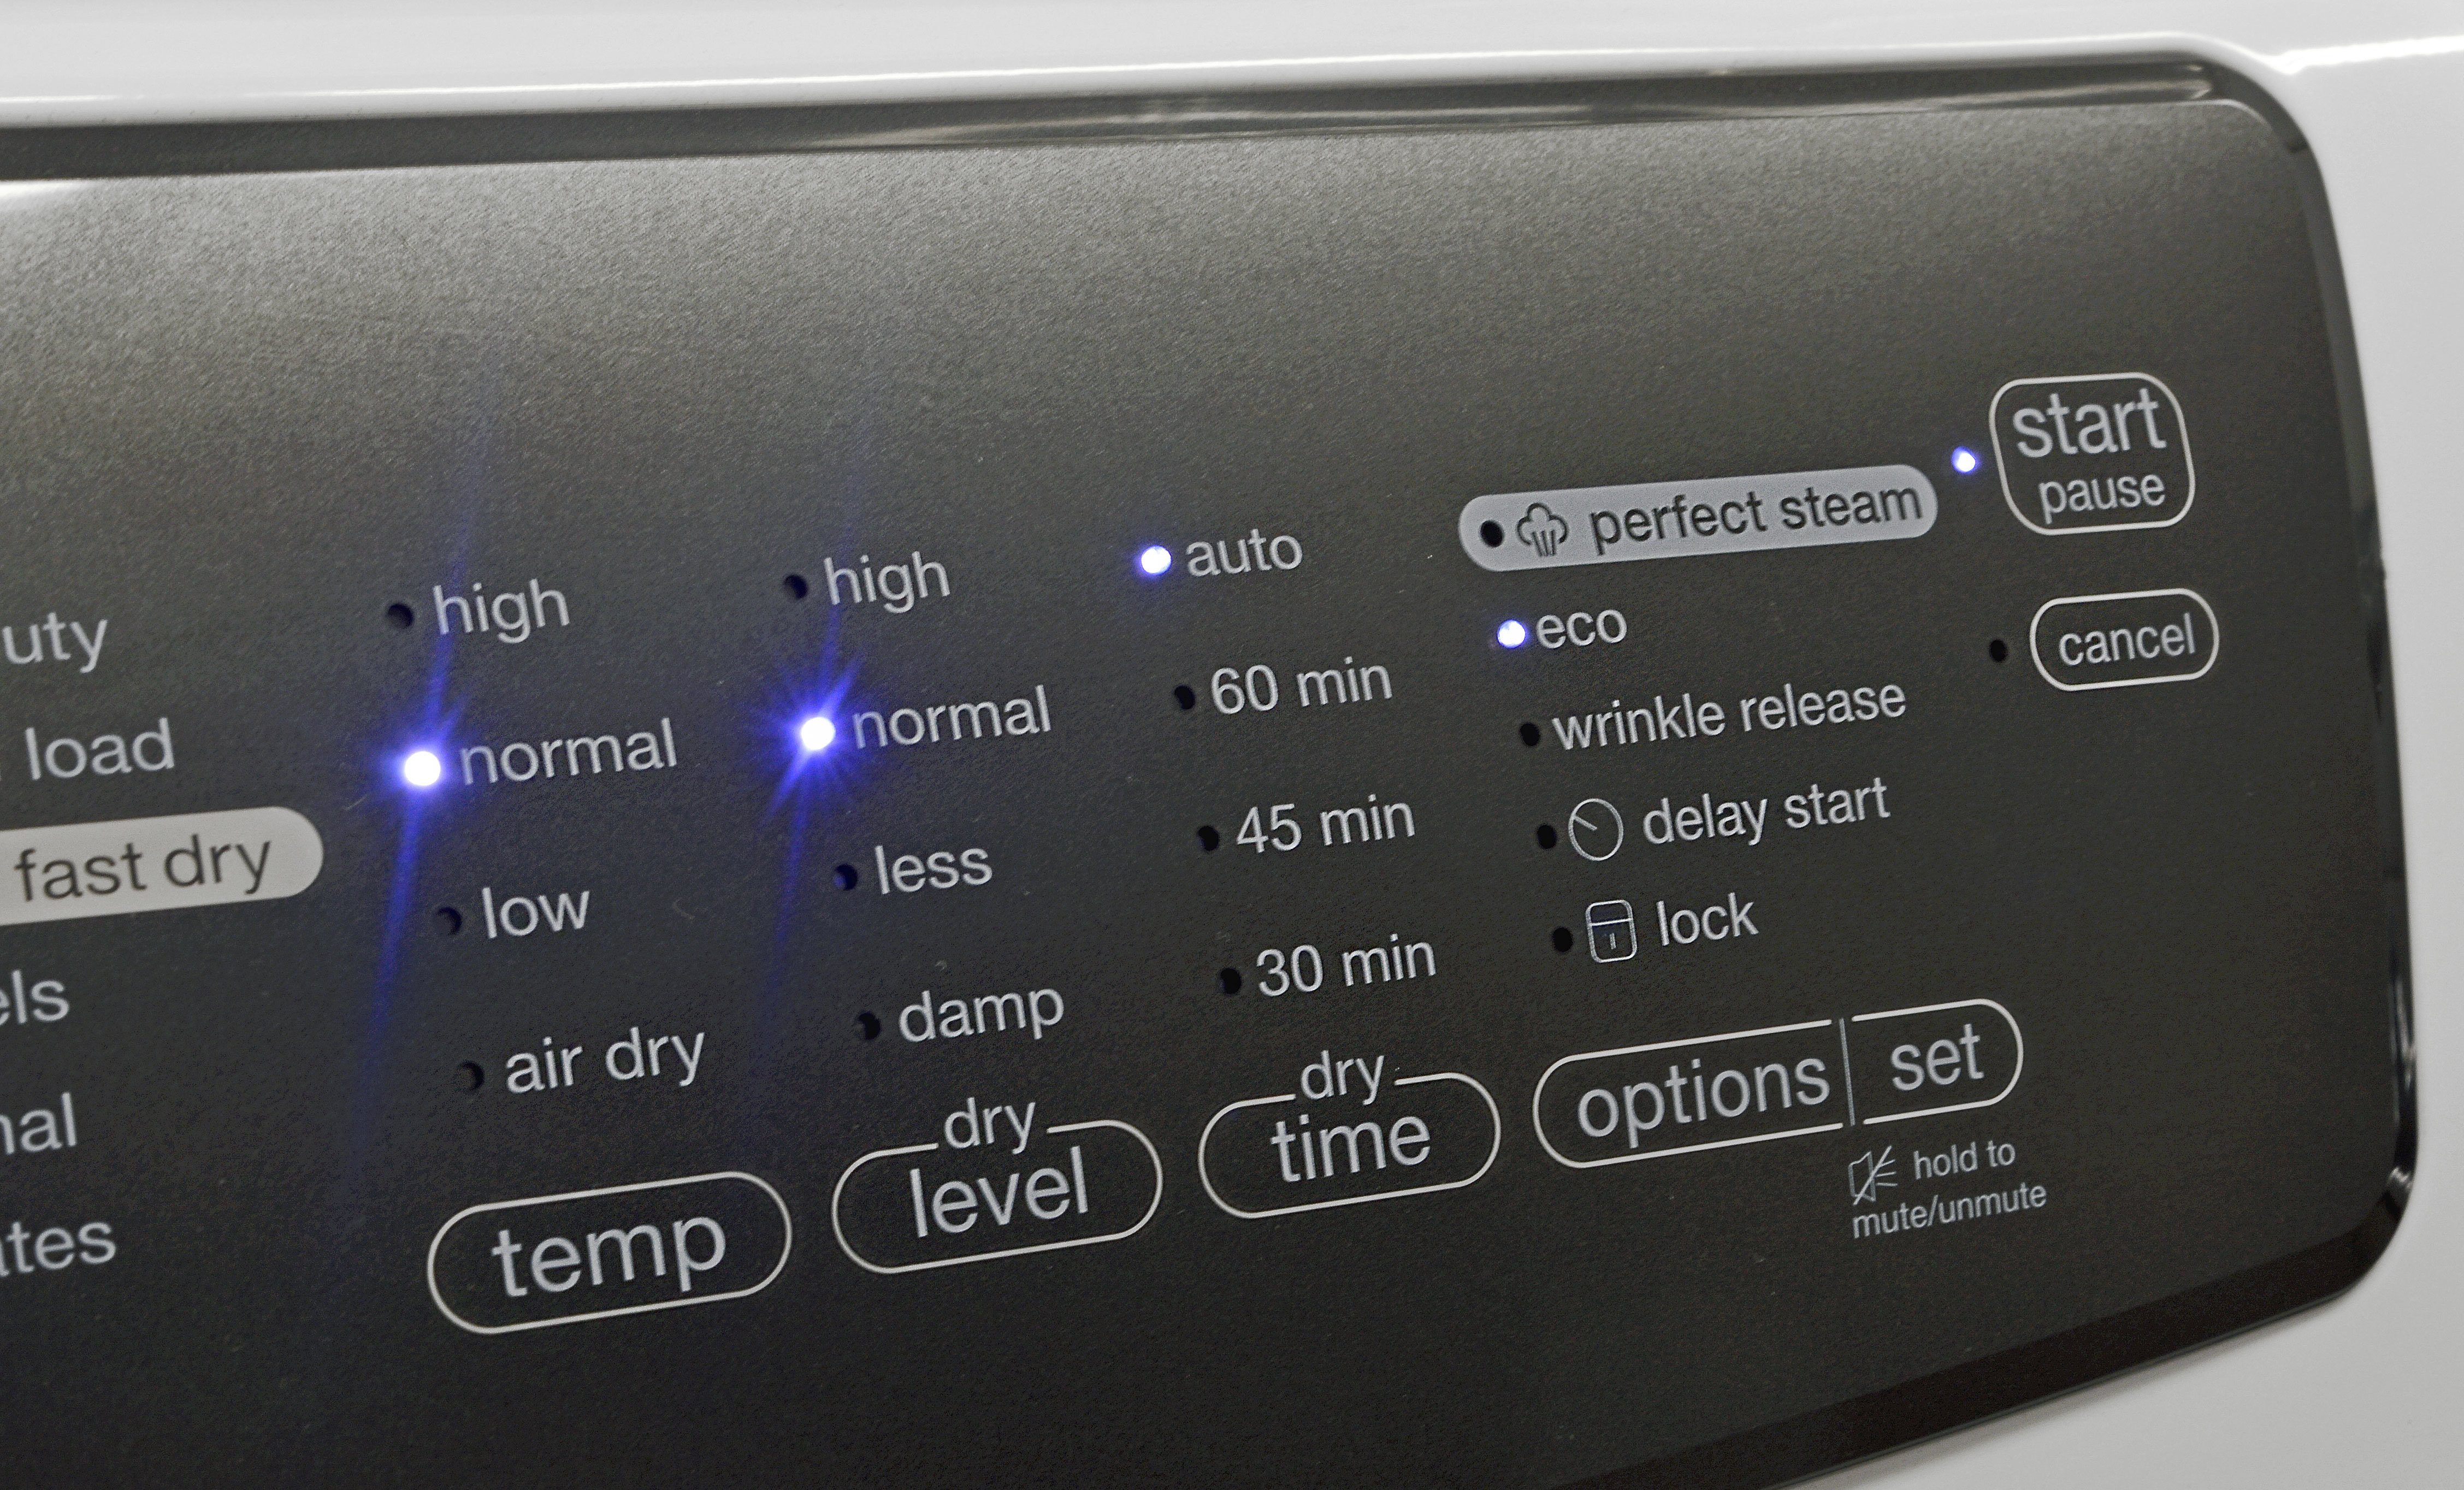 The Electrolux EFME417SIW's feature list is pretty slim, but leaves you with some useful options.